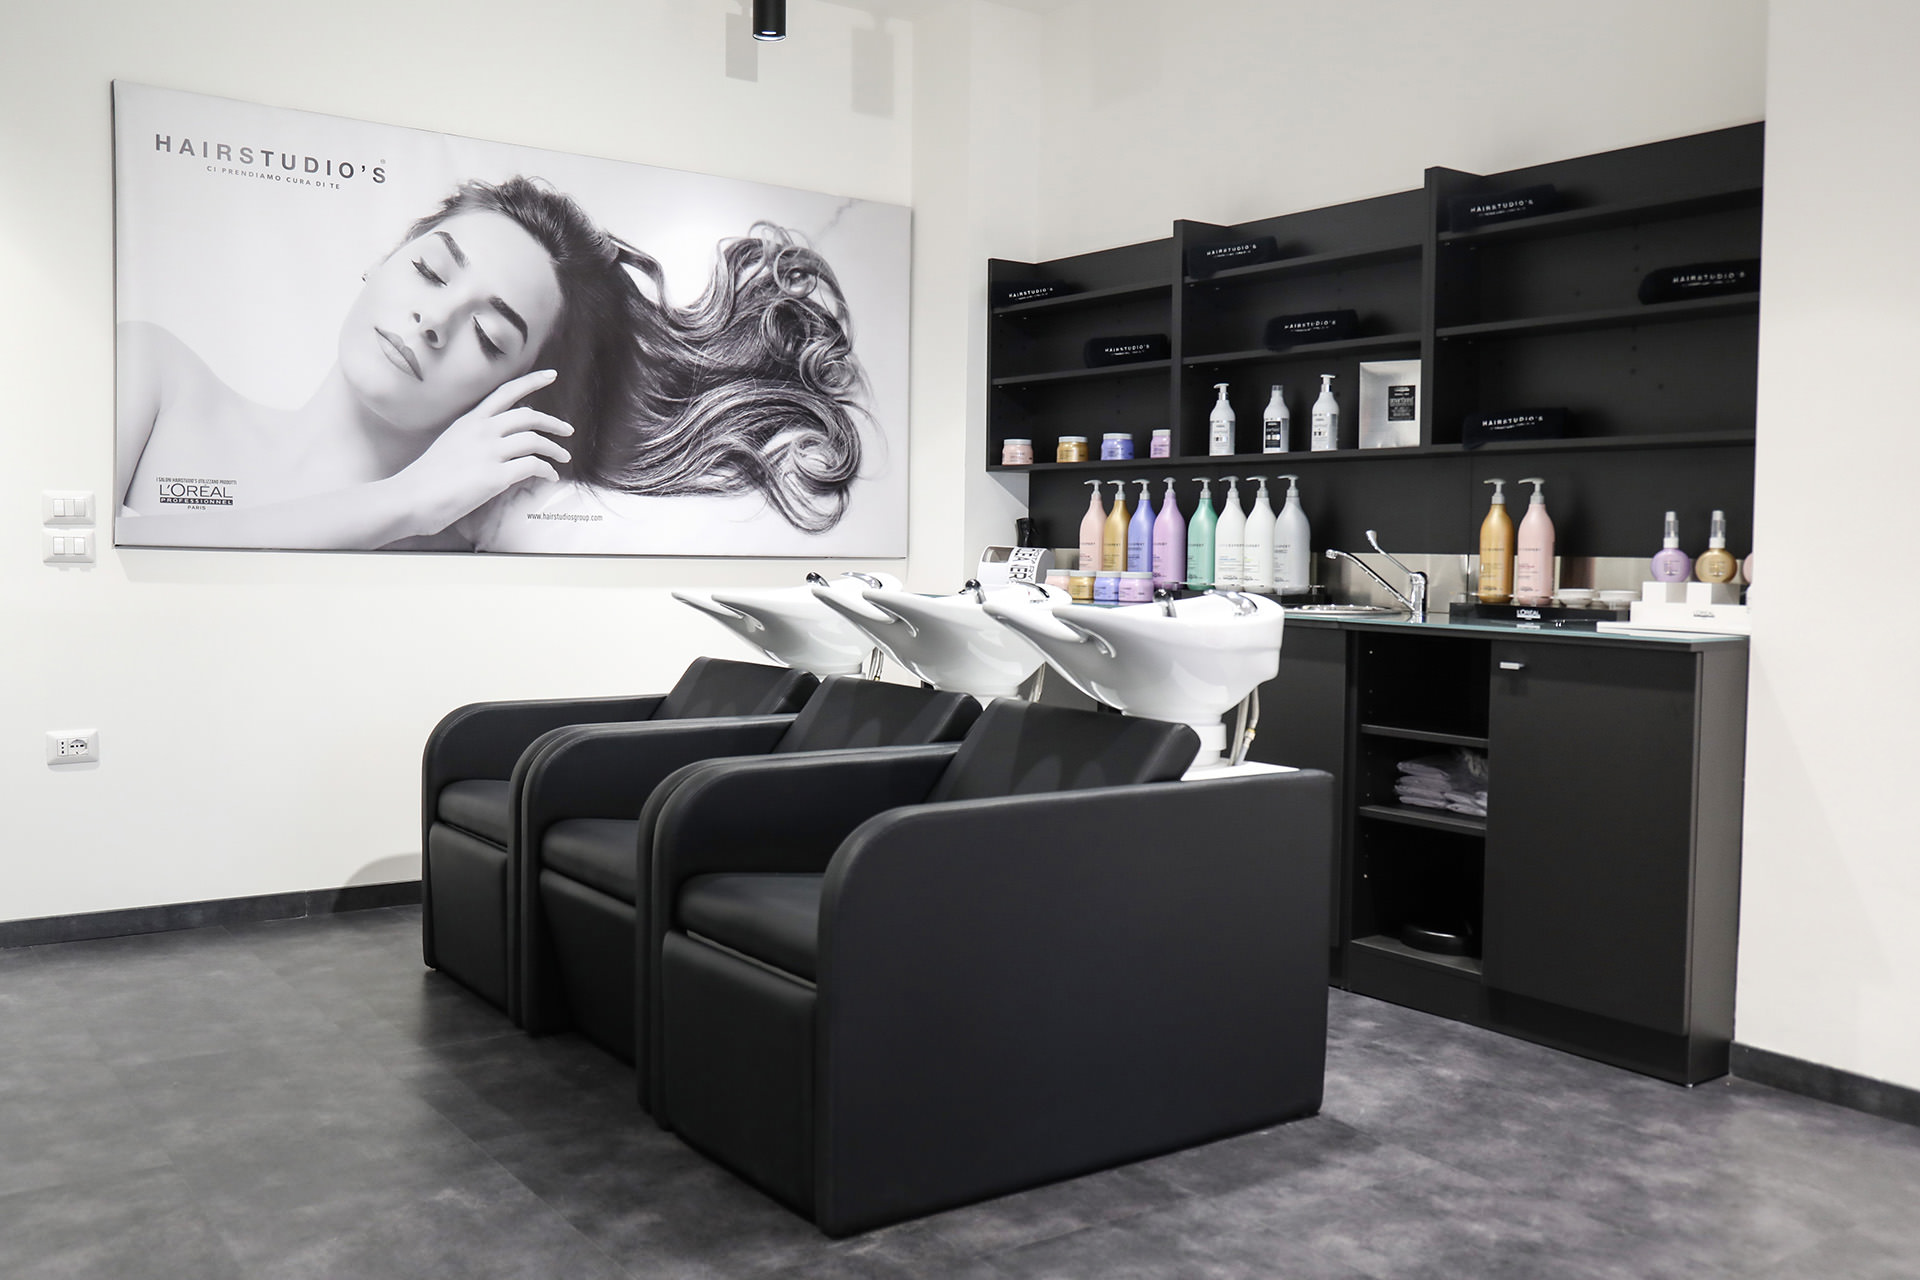 hairstudios-salon-concept-5